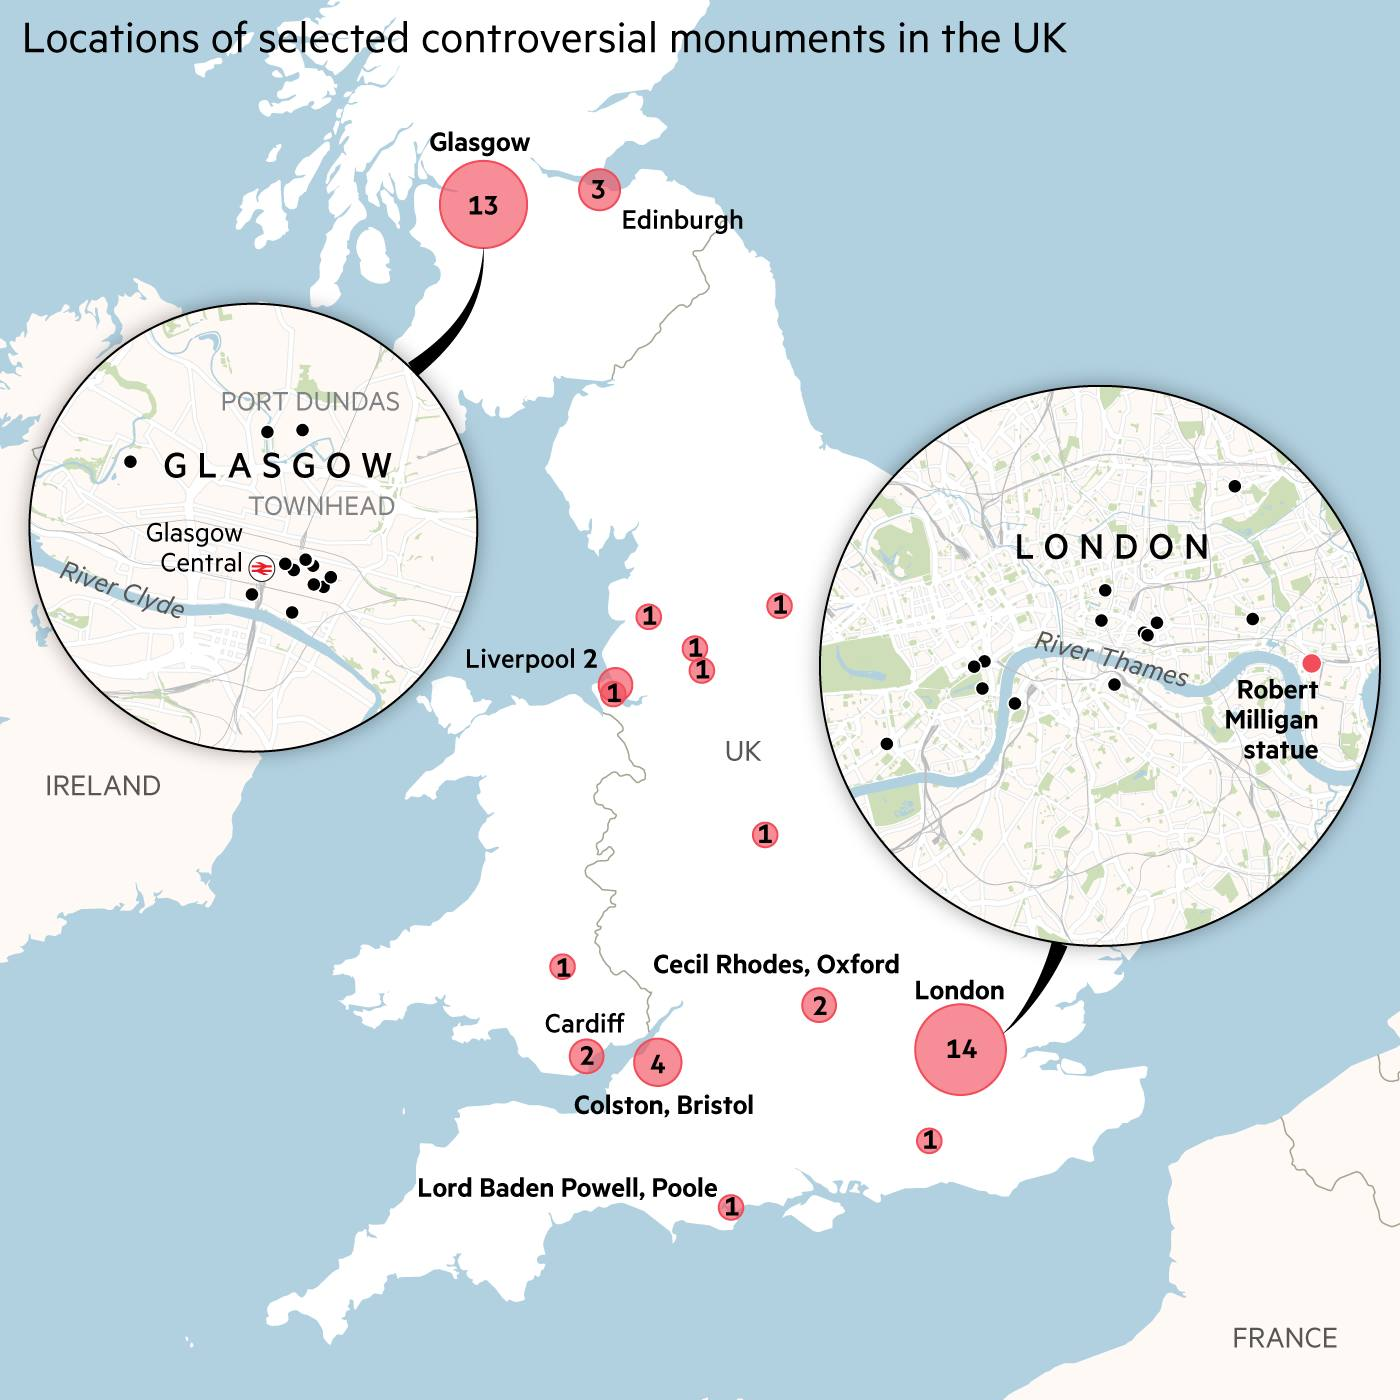 Map showing the locations of selected controversial monuments in the UK, highlighting 14 in London and 13 in Glasgow.